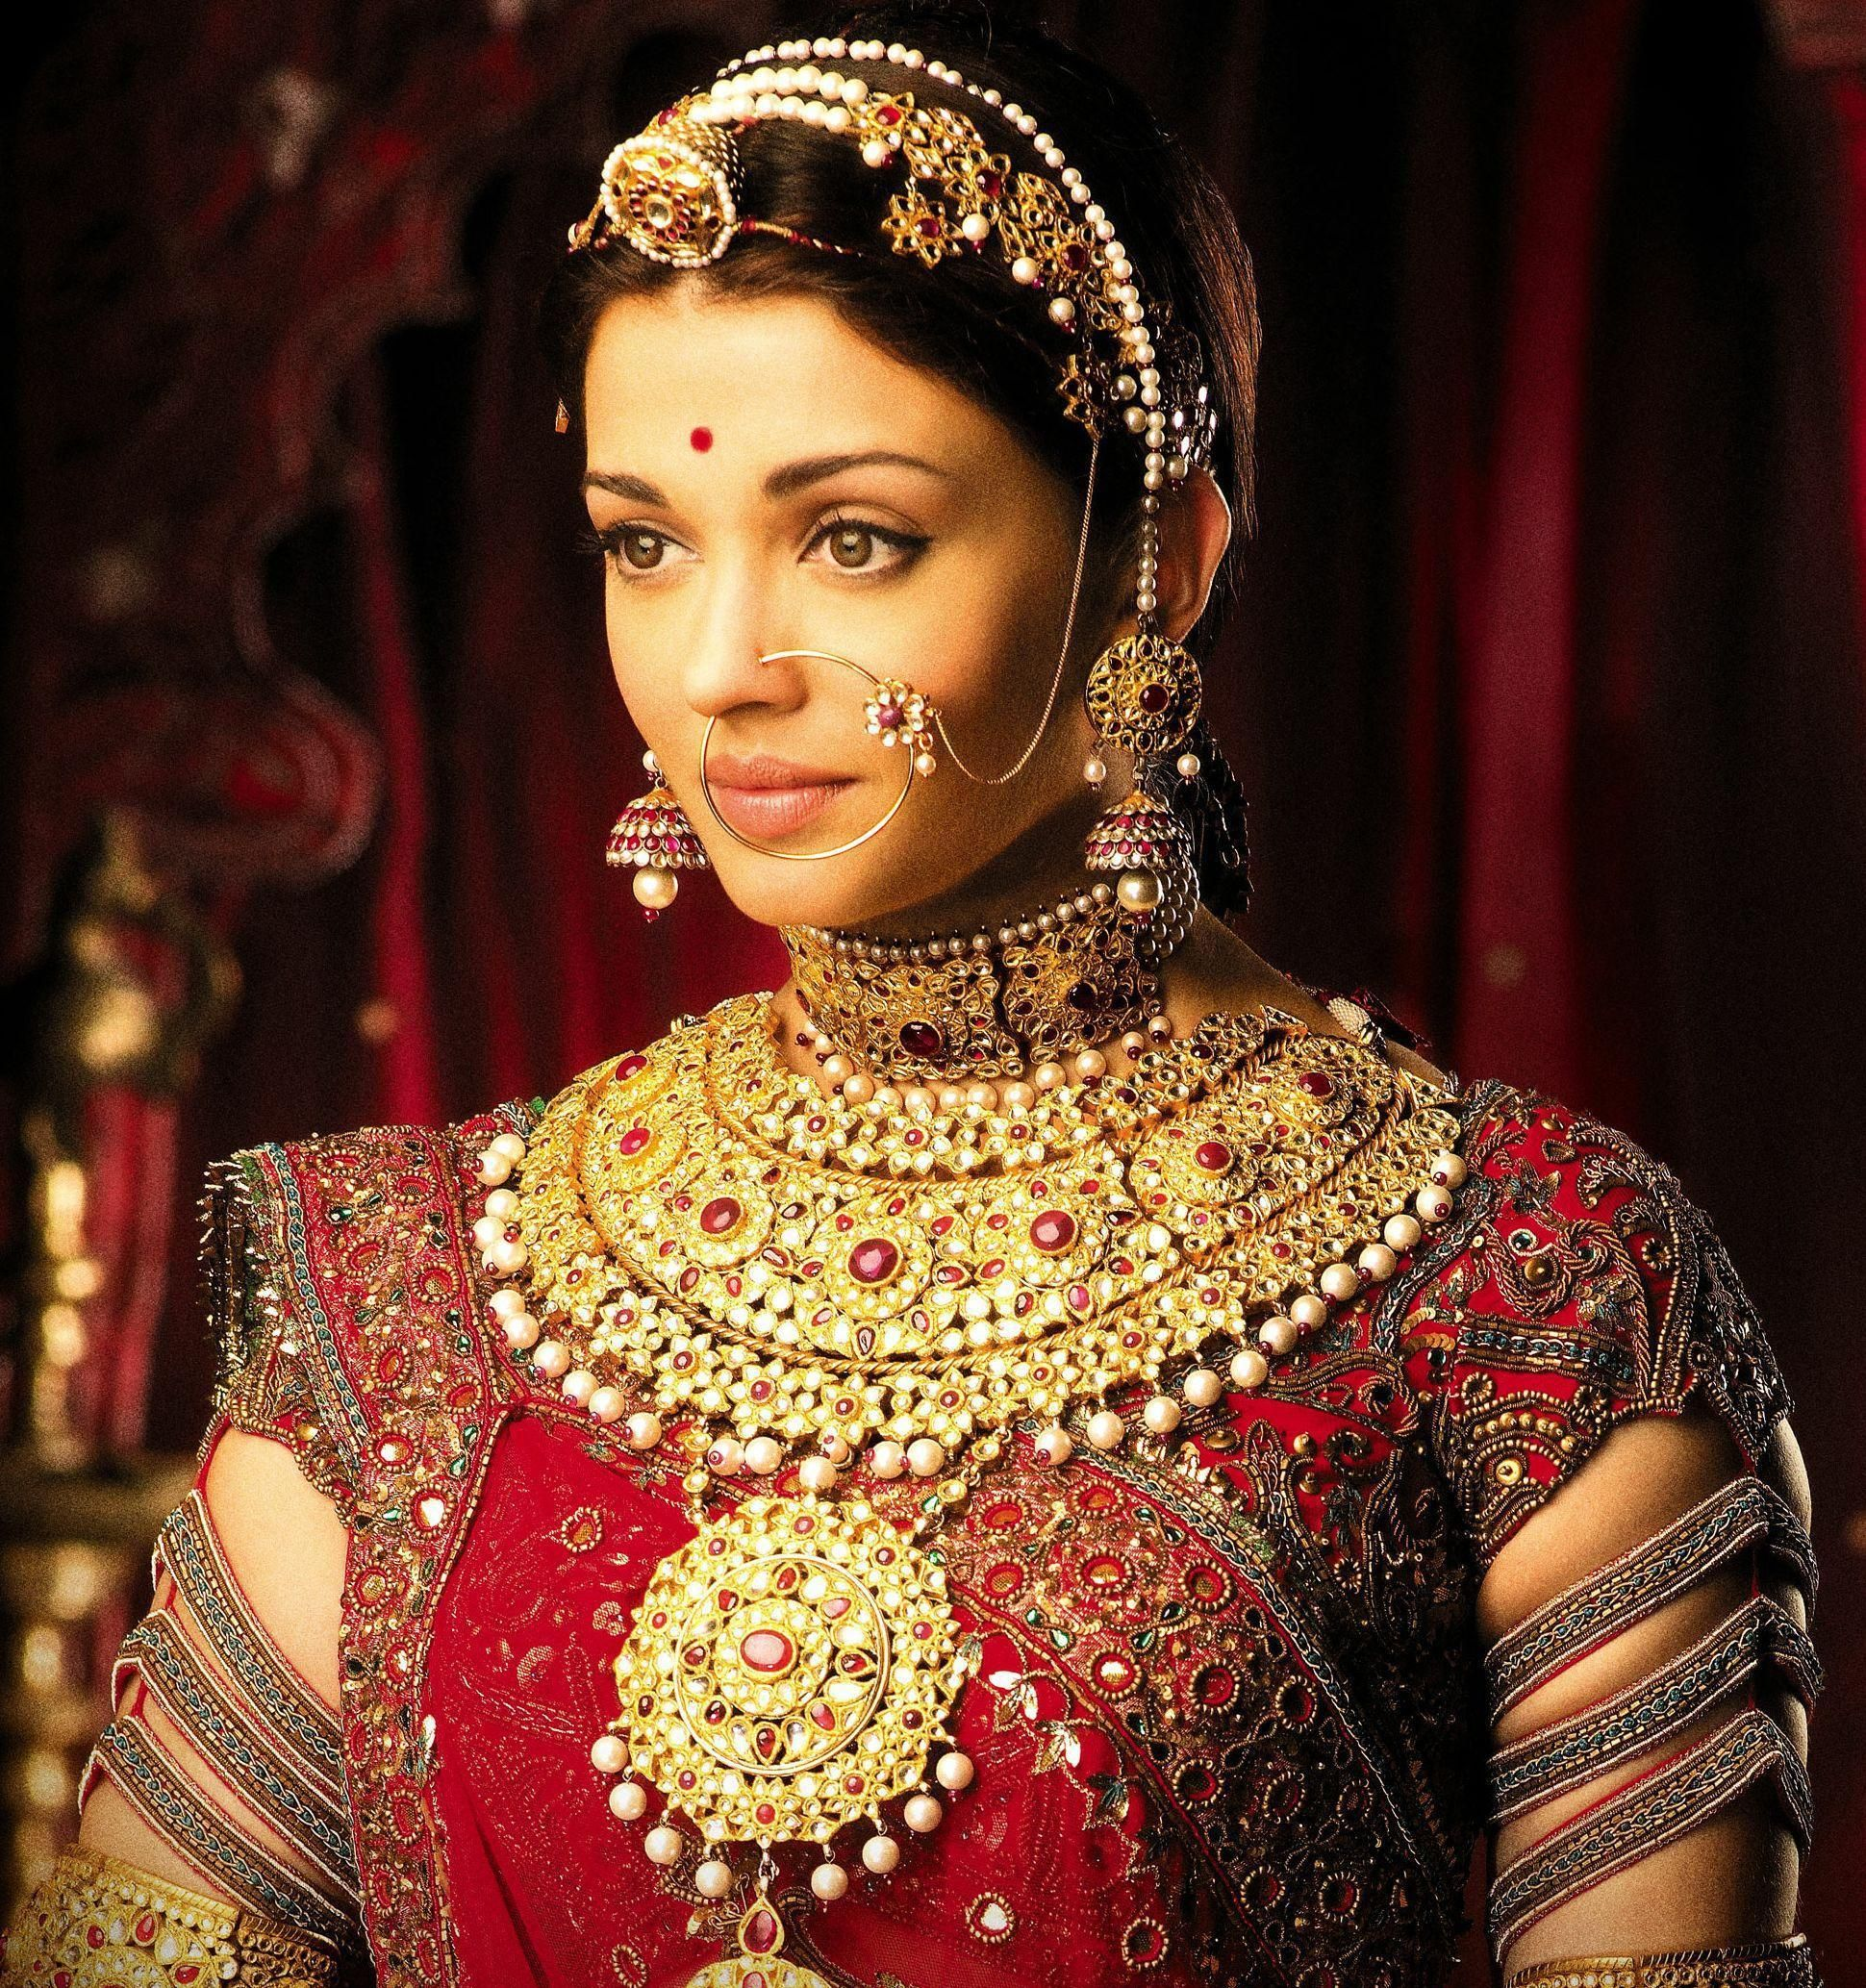 Pretty Aishwarya Have The Very Same Image As A Pillow Case On My Couch Indian Bridal Indian Bride Bridal Jewellery Indian